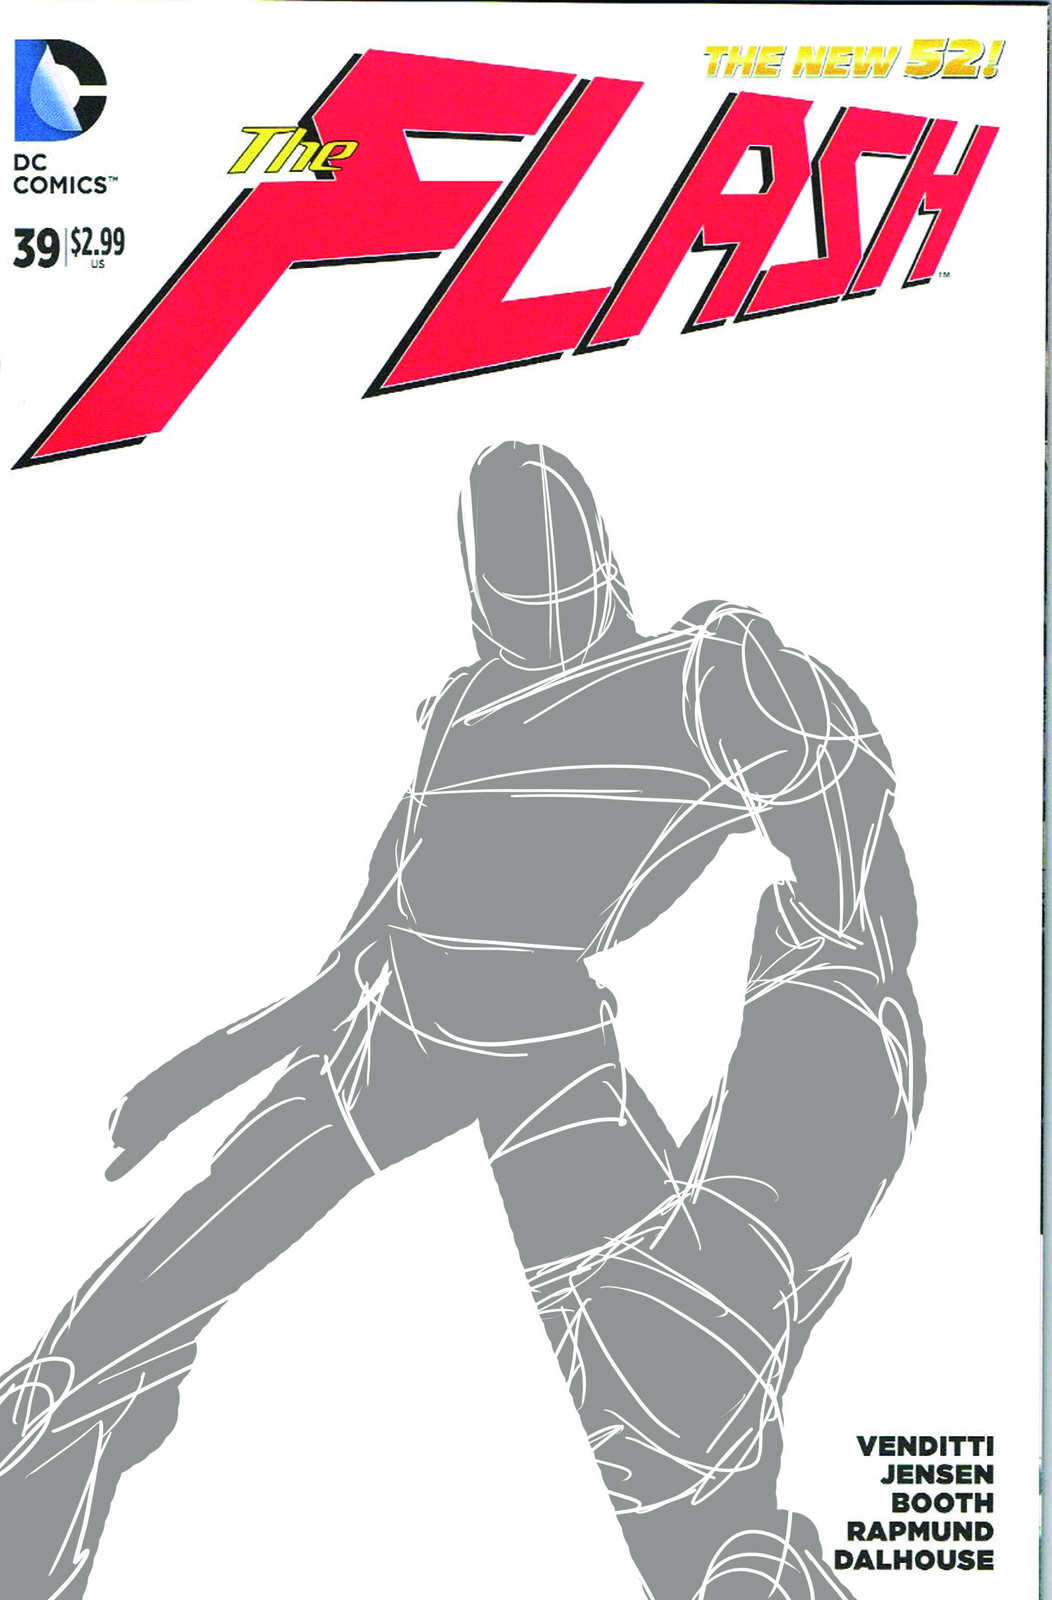 First concept for the blank sketch cover